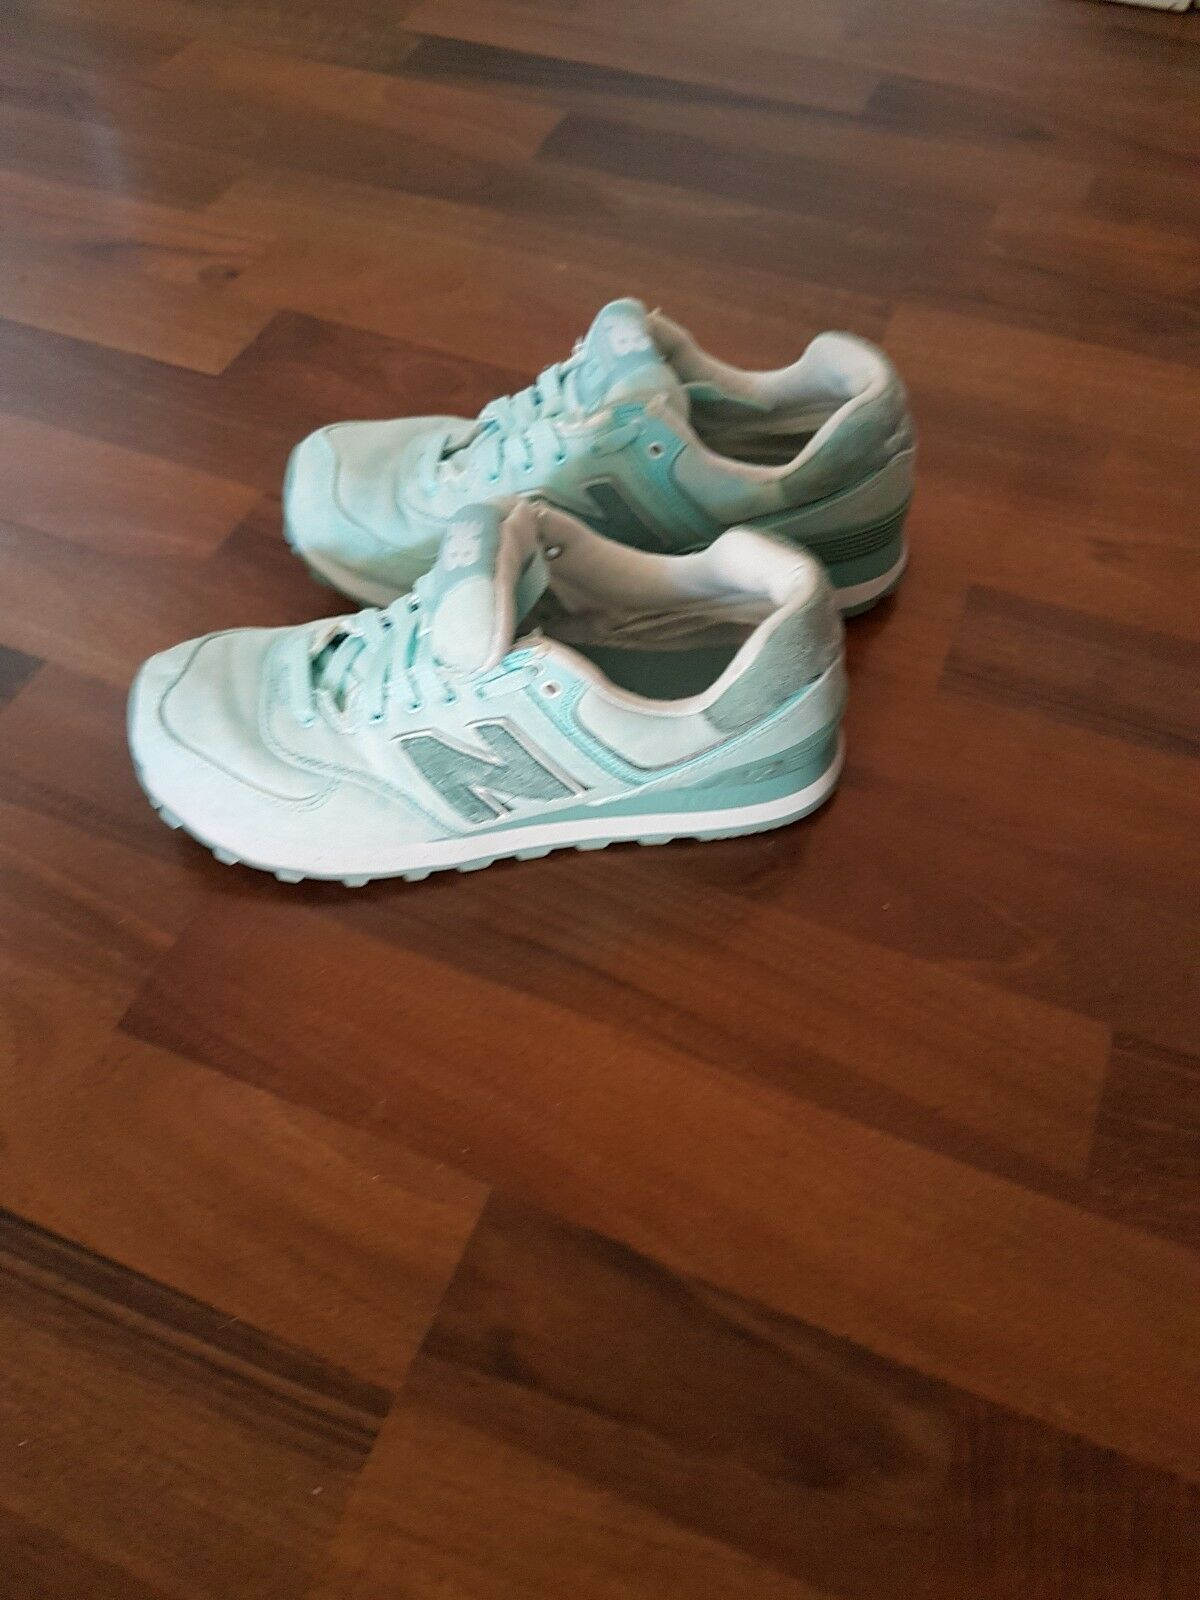 New balance 574, Damen, türkis/mint, 38